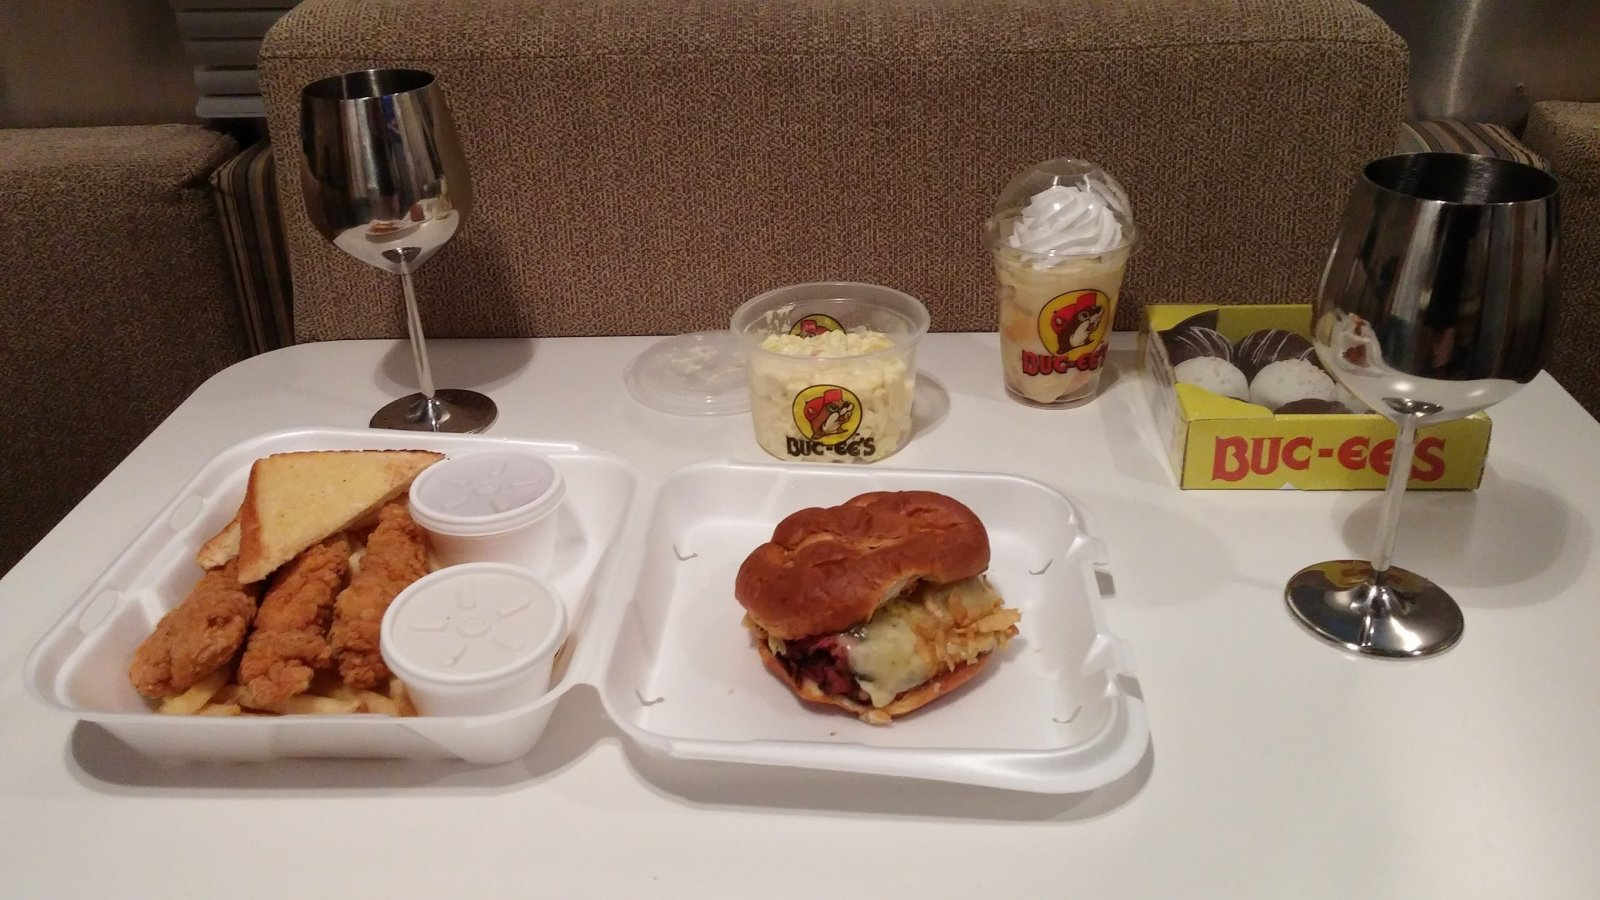 Click image for larger version  Name:BUC-EE's Food 1.jpg Views:92 Size:230.5 KB ID:252962